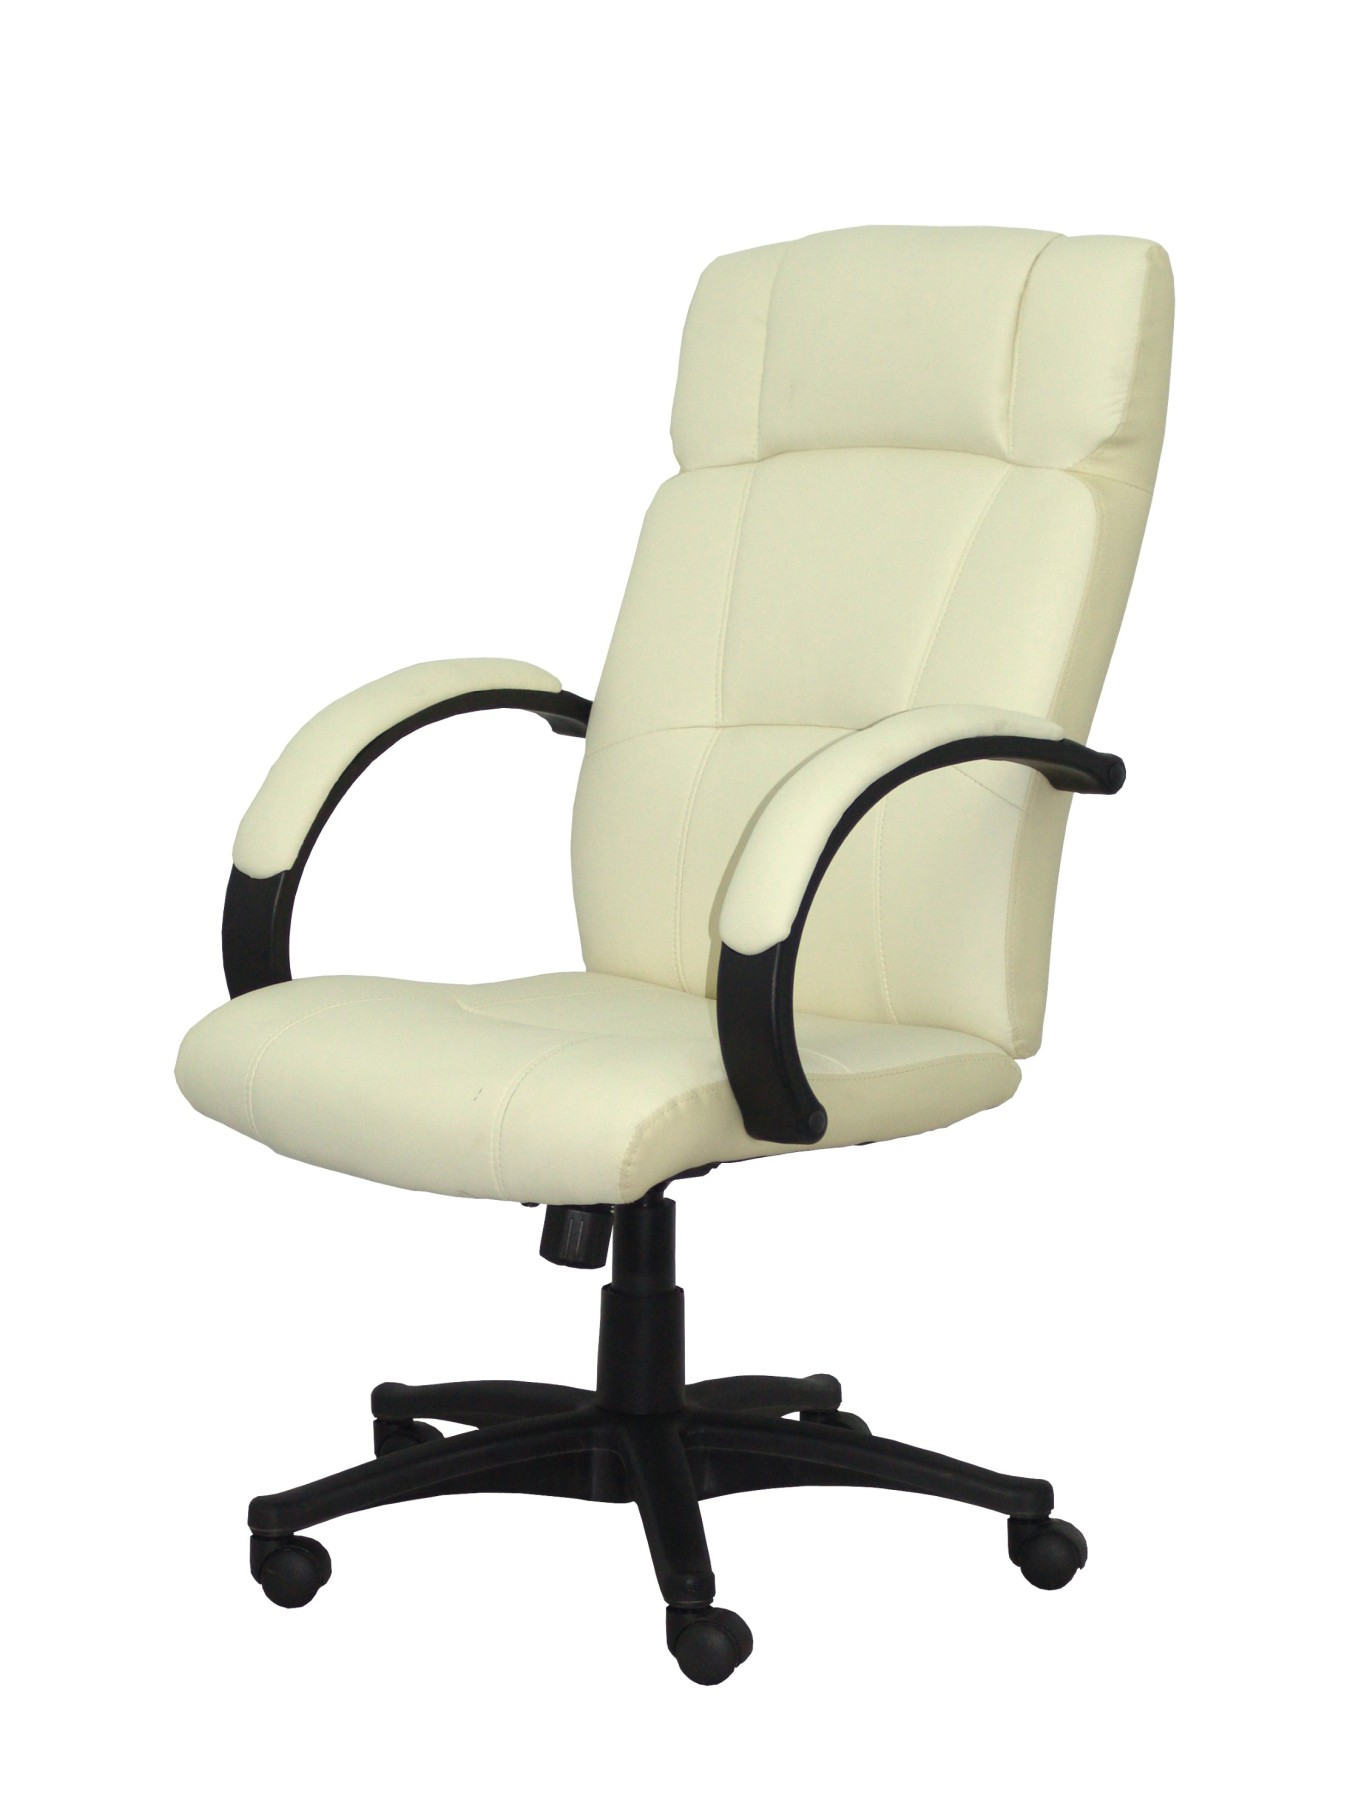 Armchair Ergonomic Steering With Tilting House Mechanism And Dimmable In High Altitude Upholstered In Similpiel Cream Color De P